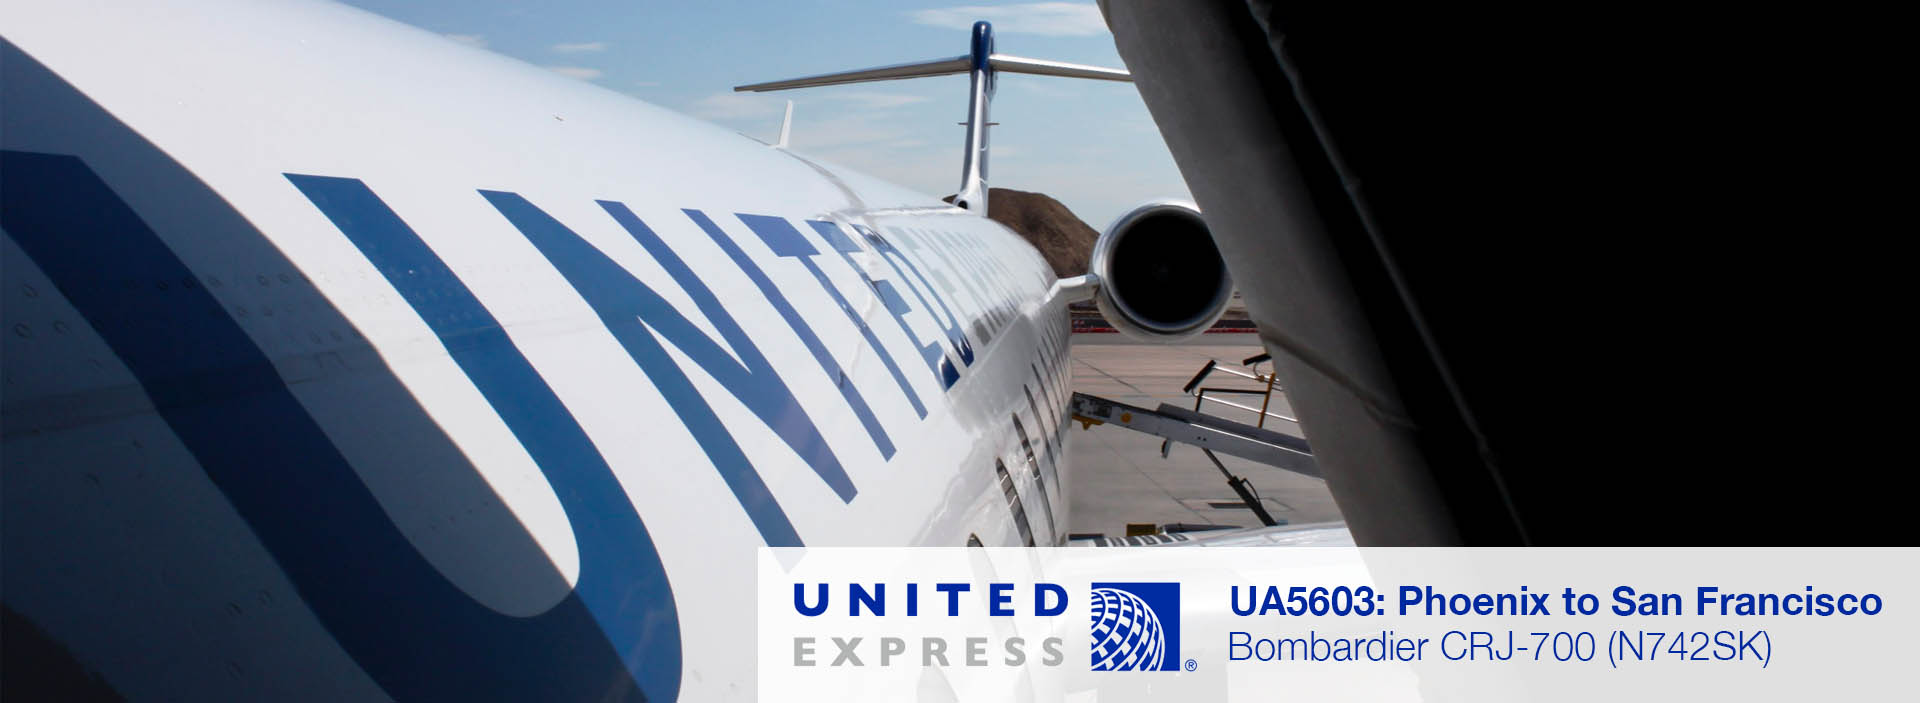 Flight Review: United Express CRJ-700 Economy Class from Phoenix to San Francisco